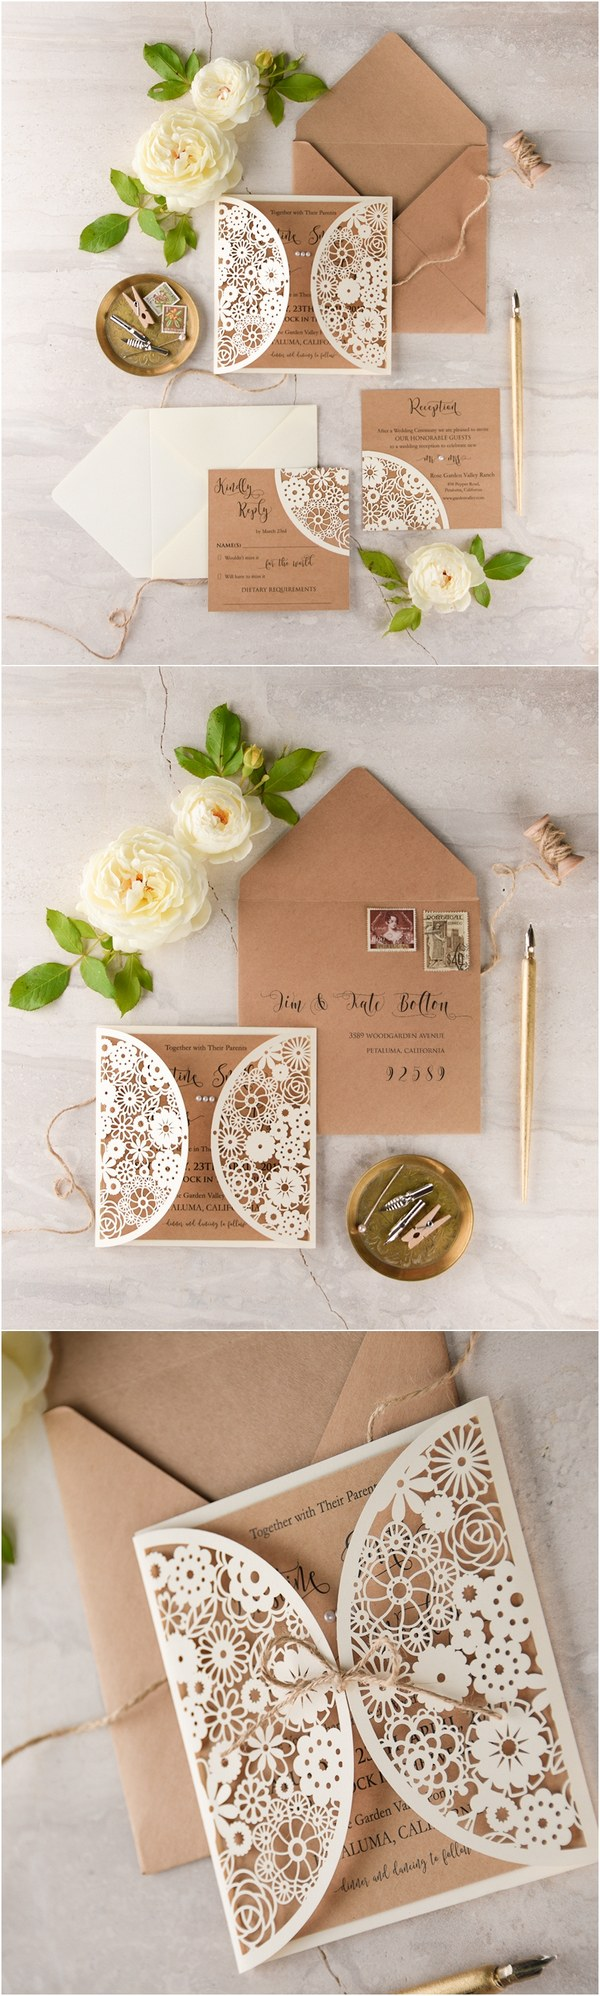 Laser cut kraft paper rustic wedding invitations 07LuctCz